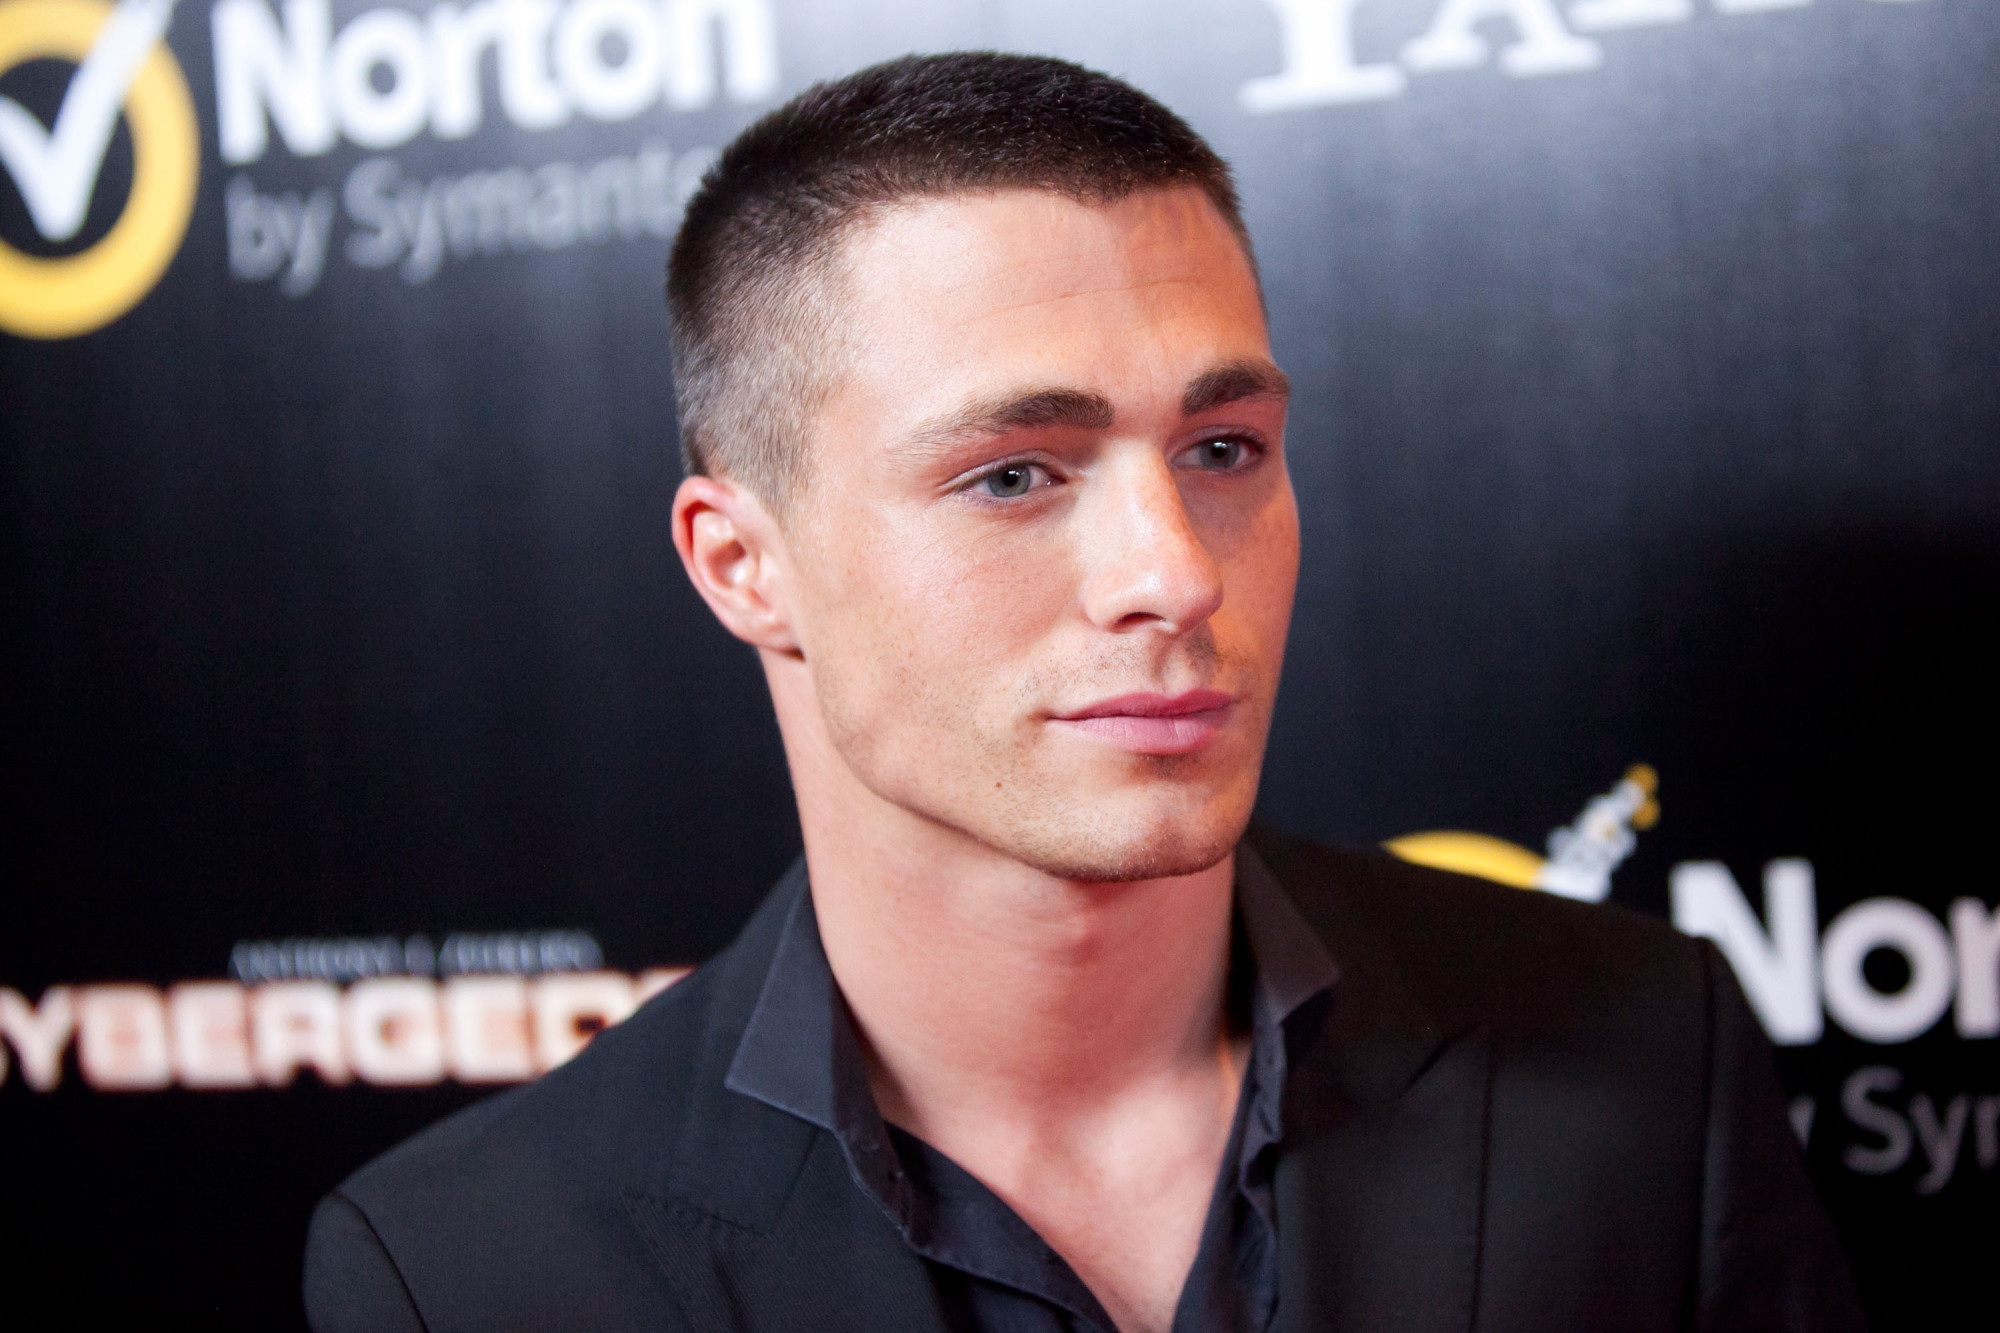 High Resolution Wallpaper | Colton Haynes 2000x1333 px